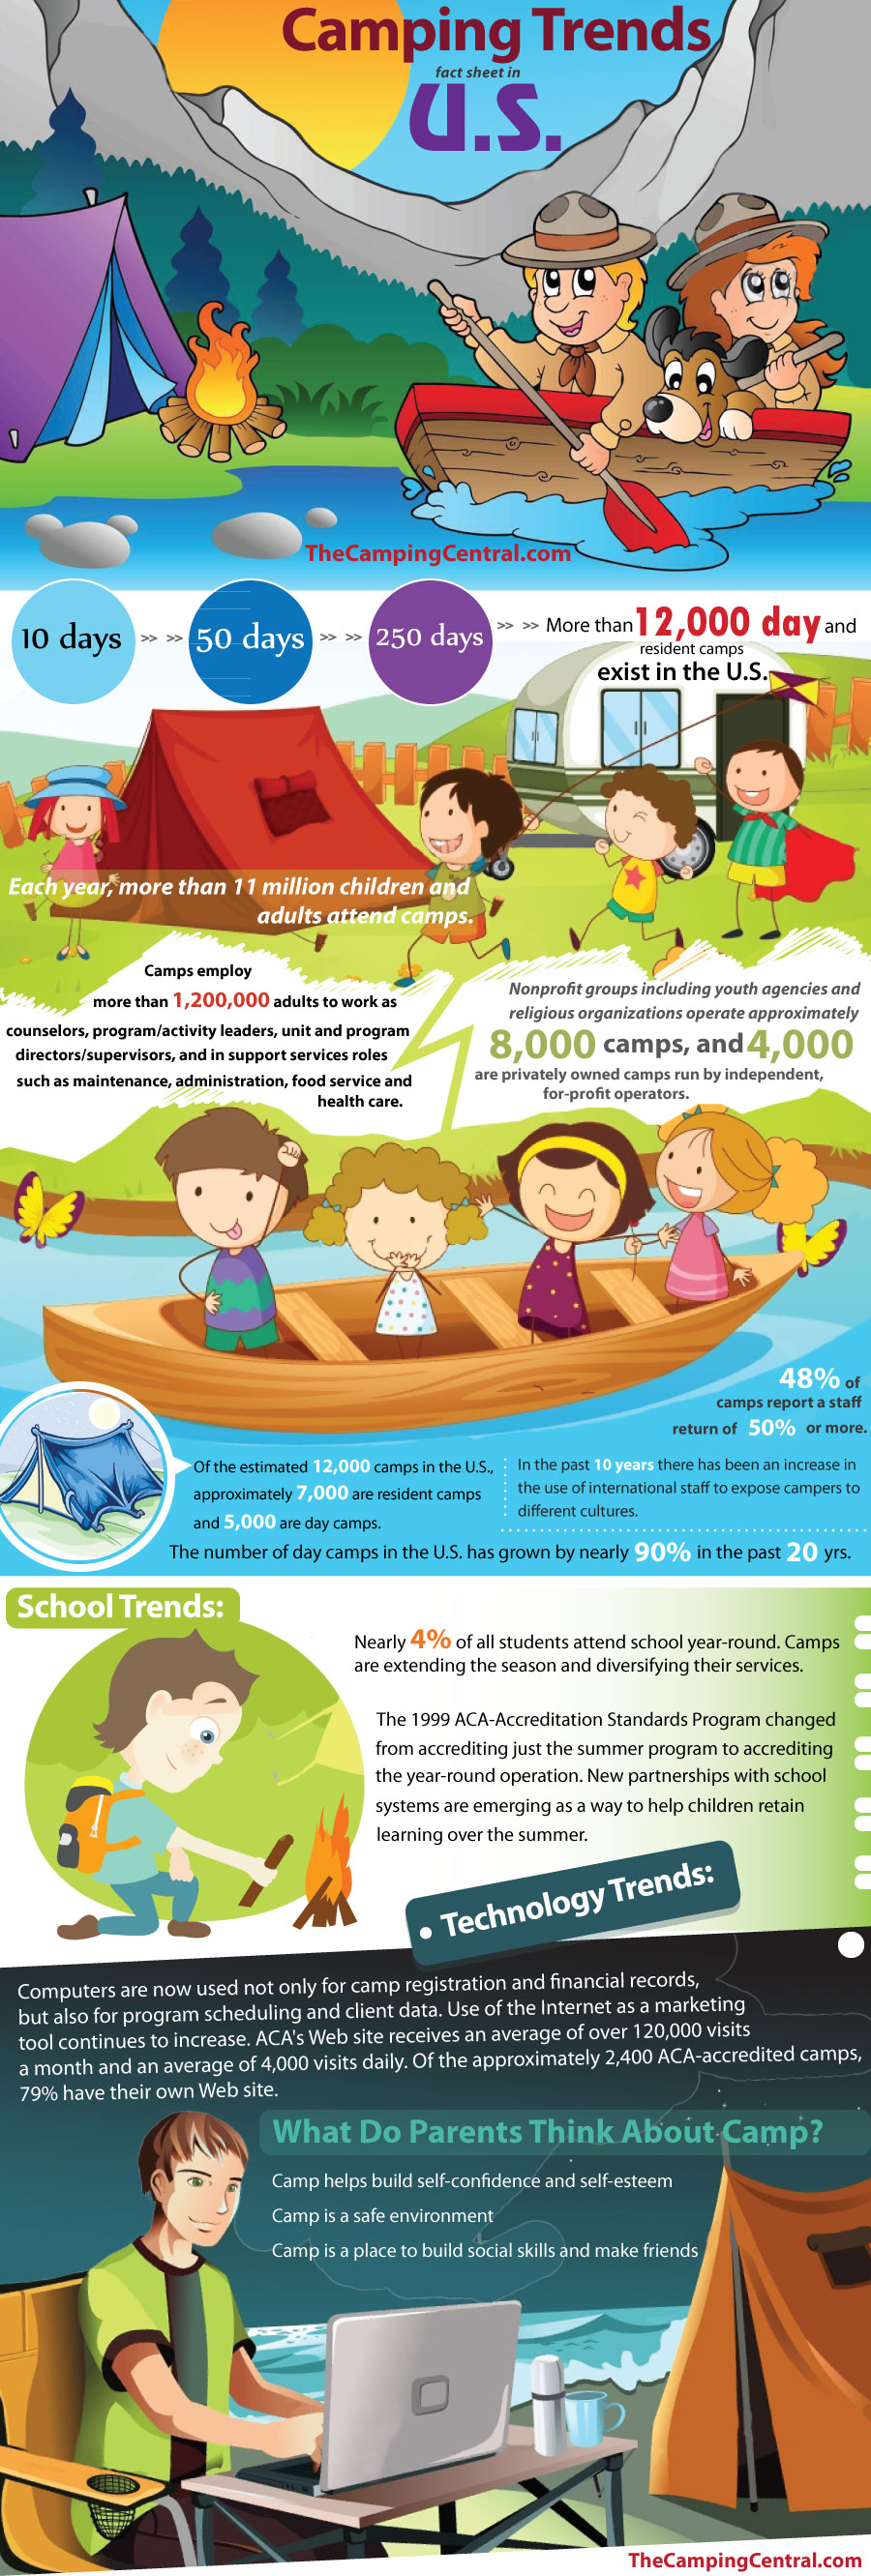 Camping Trends Fact Sheet in the U.S.